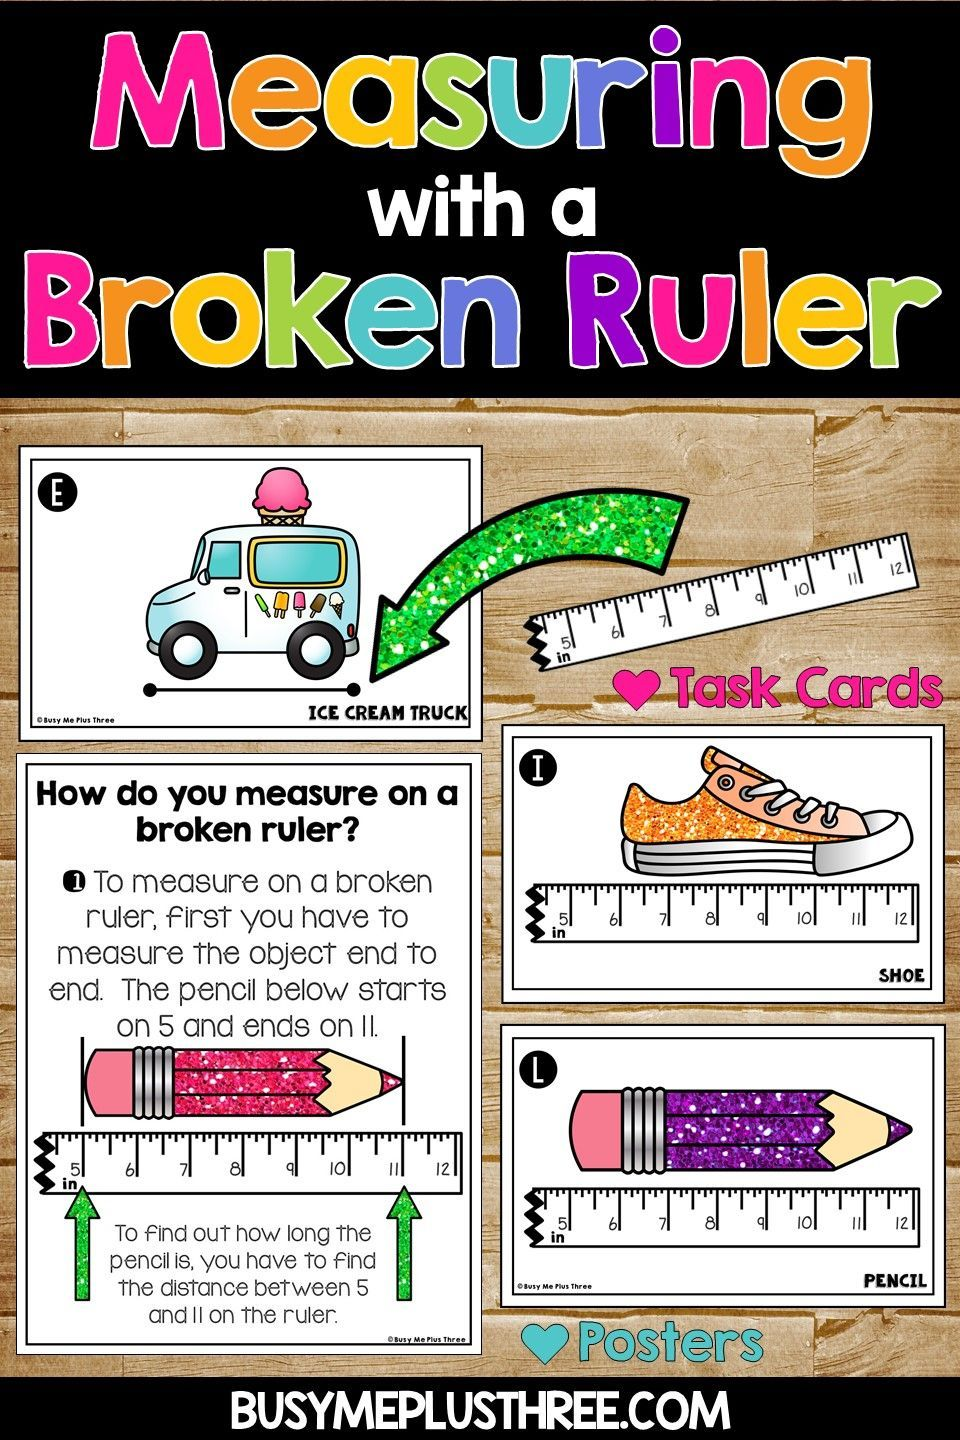 Are You Looking For Some Activities And Worksheets To Use With The Broken Ruler Concept These Are G Math Measurement Measurement Activities Second Grade Math [ 1440 x 960 Pixel ]